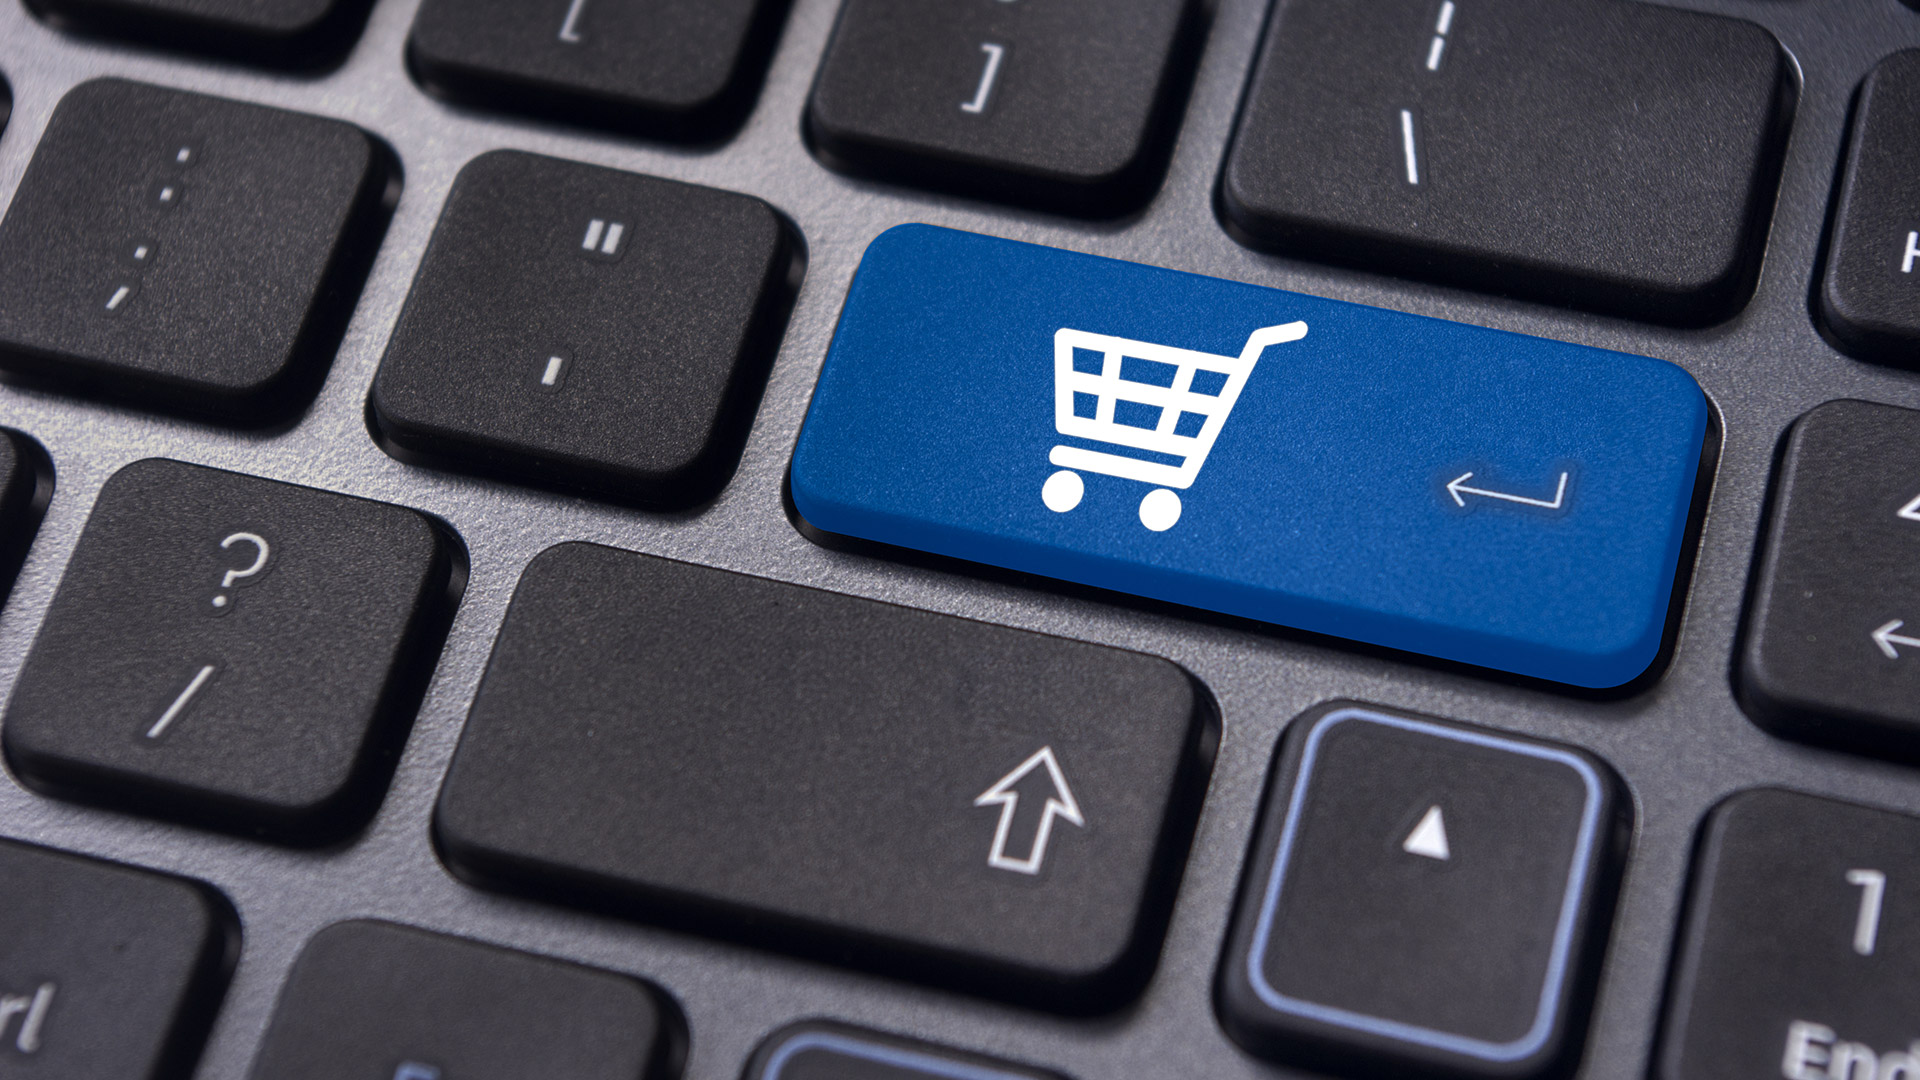 Buy computer key for commerce or retail photo